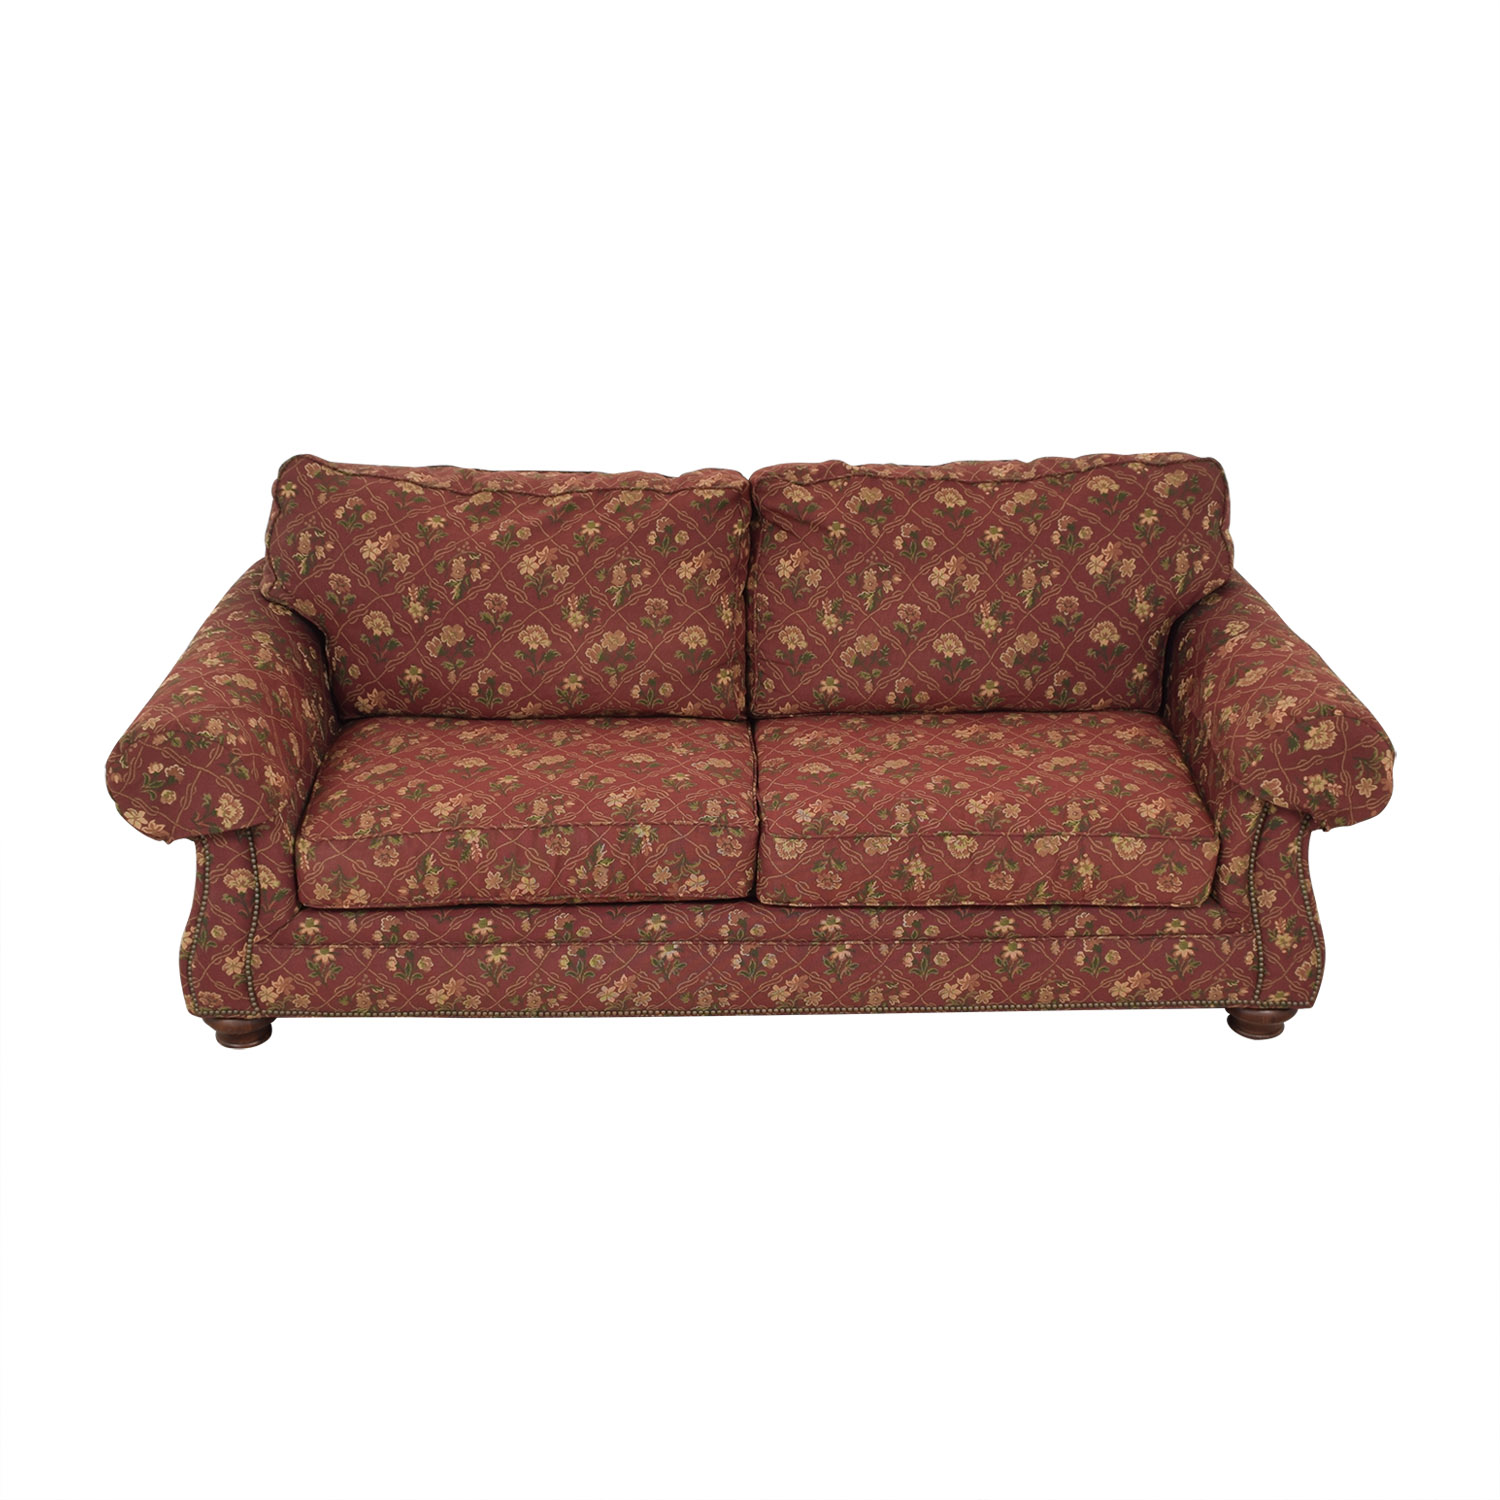 Broyhill Furniture Broyhill Furniture Laramie Sofa pa